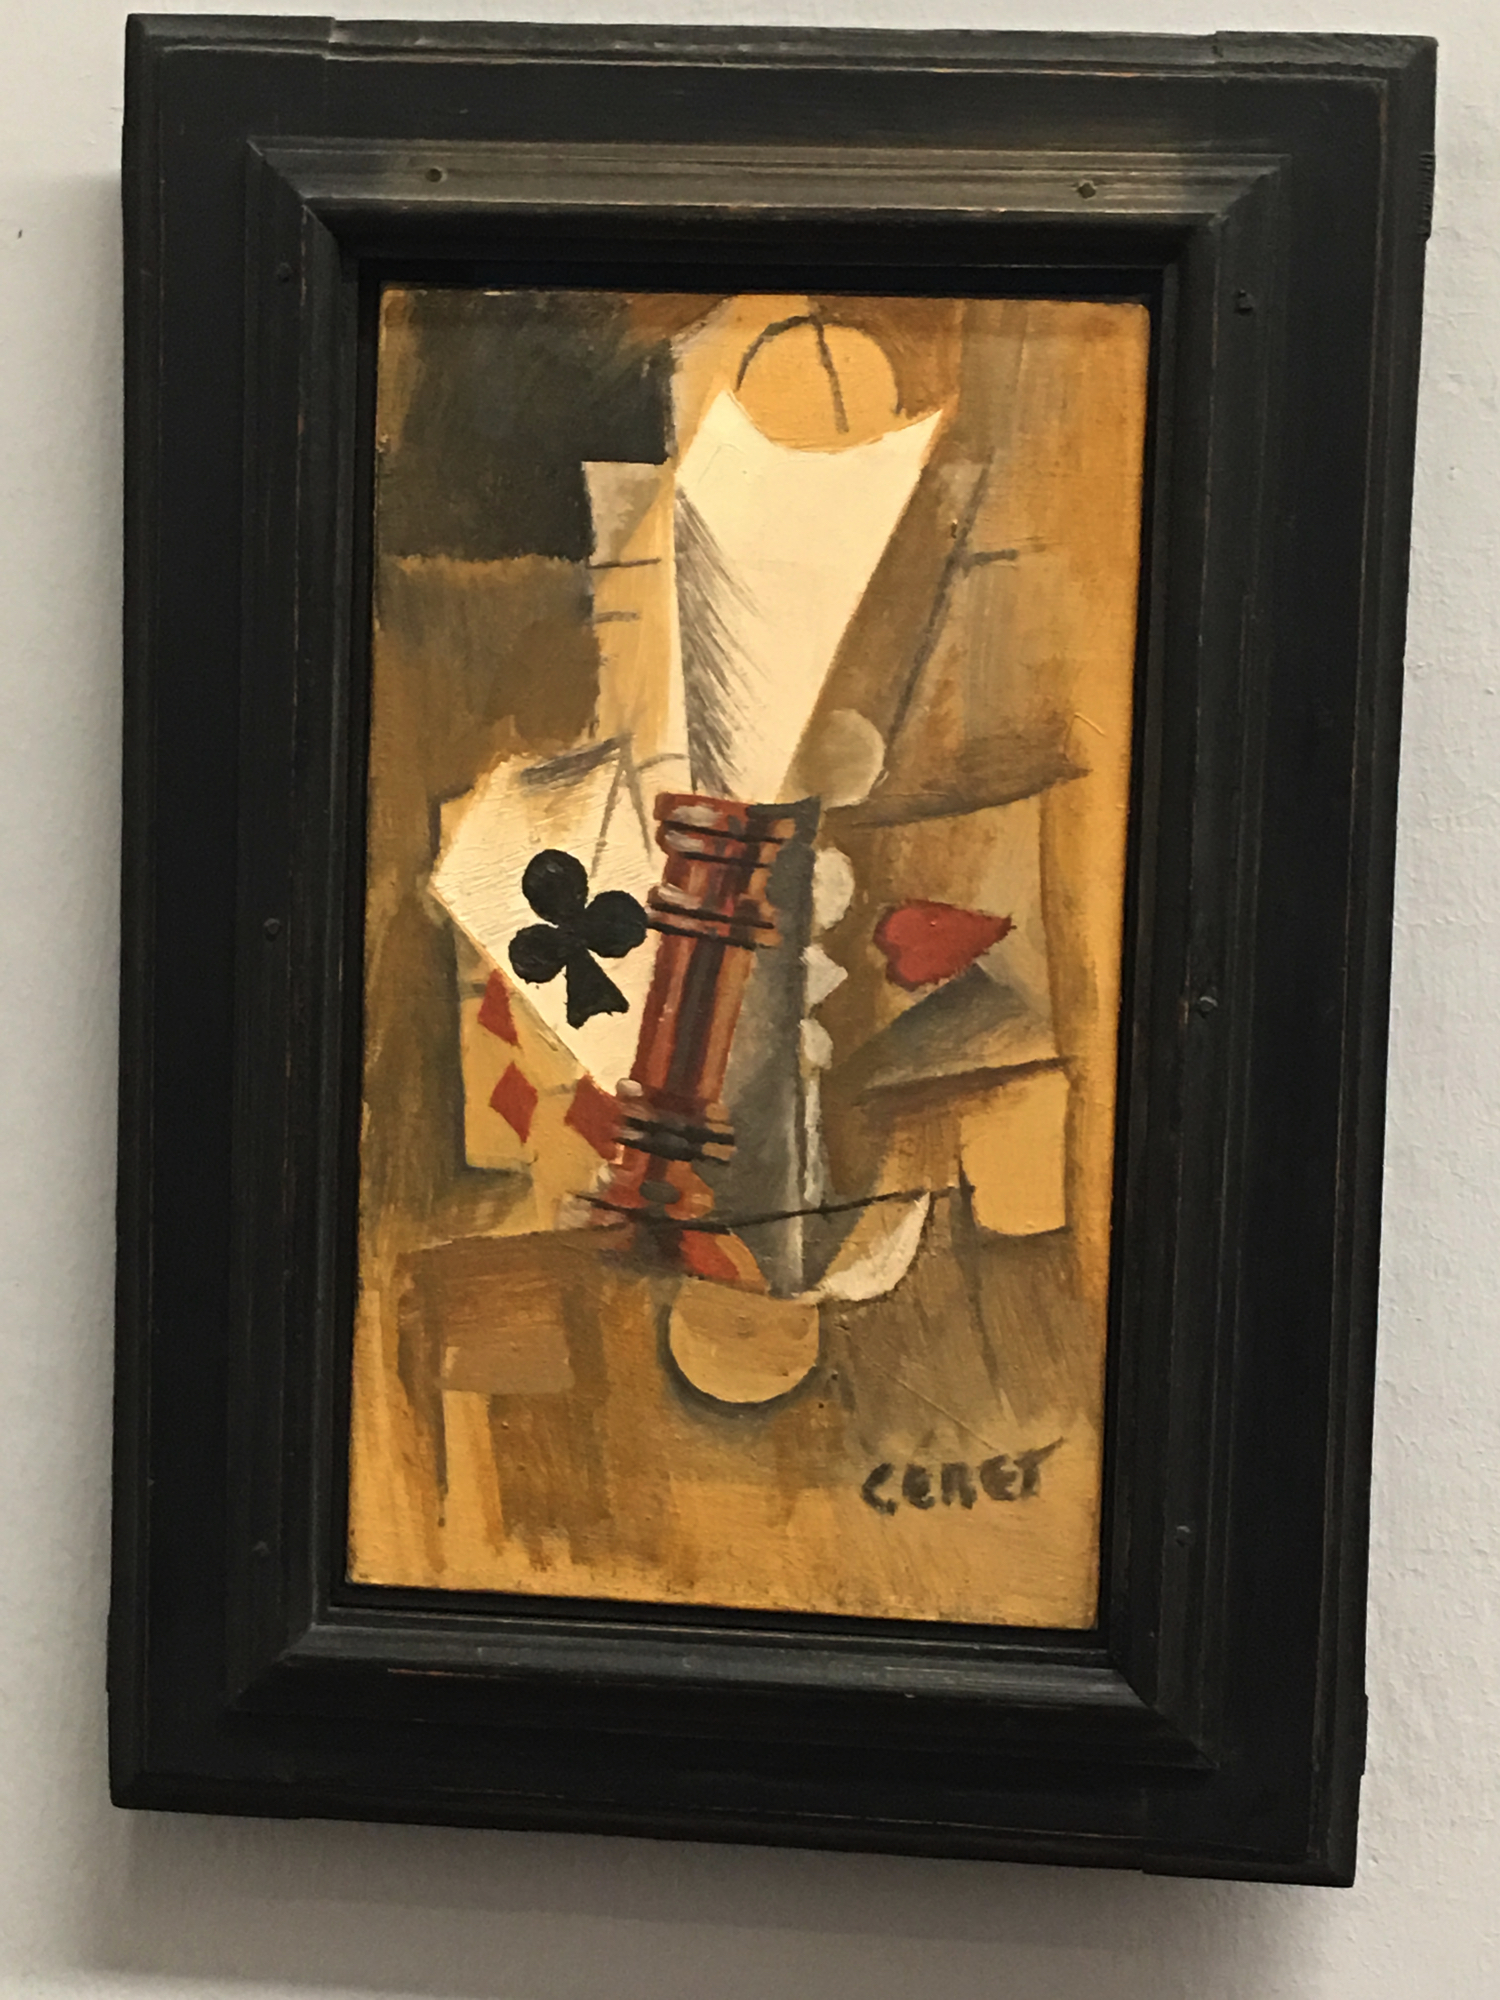 Pablo Picasso, The playing cards, 1912, Collezione Batliner, Albertina Museum, Vienna